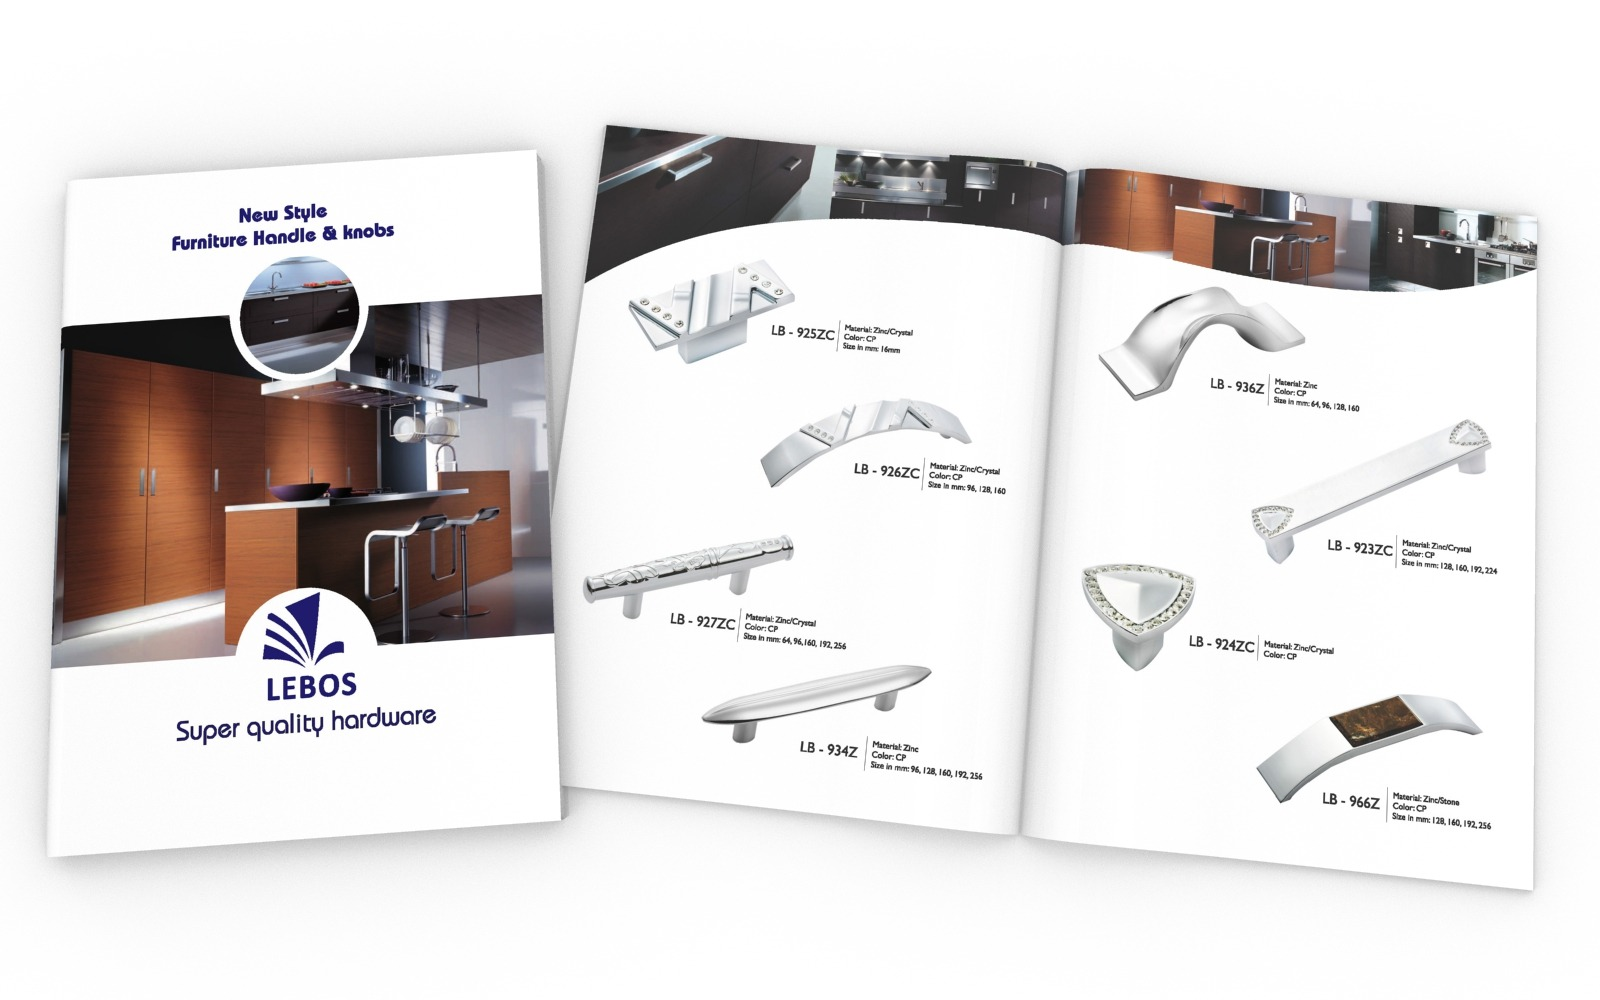 Brochure/ Catalog design for Lebos furniture handles and knobs, a Hardware manufacturer